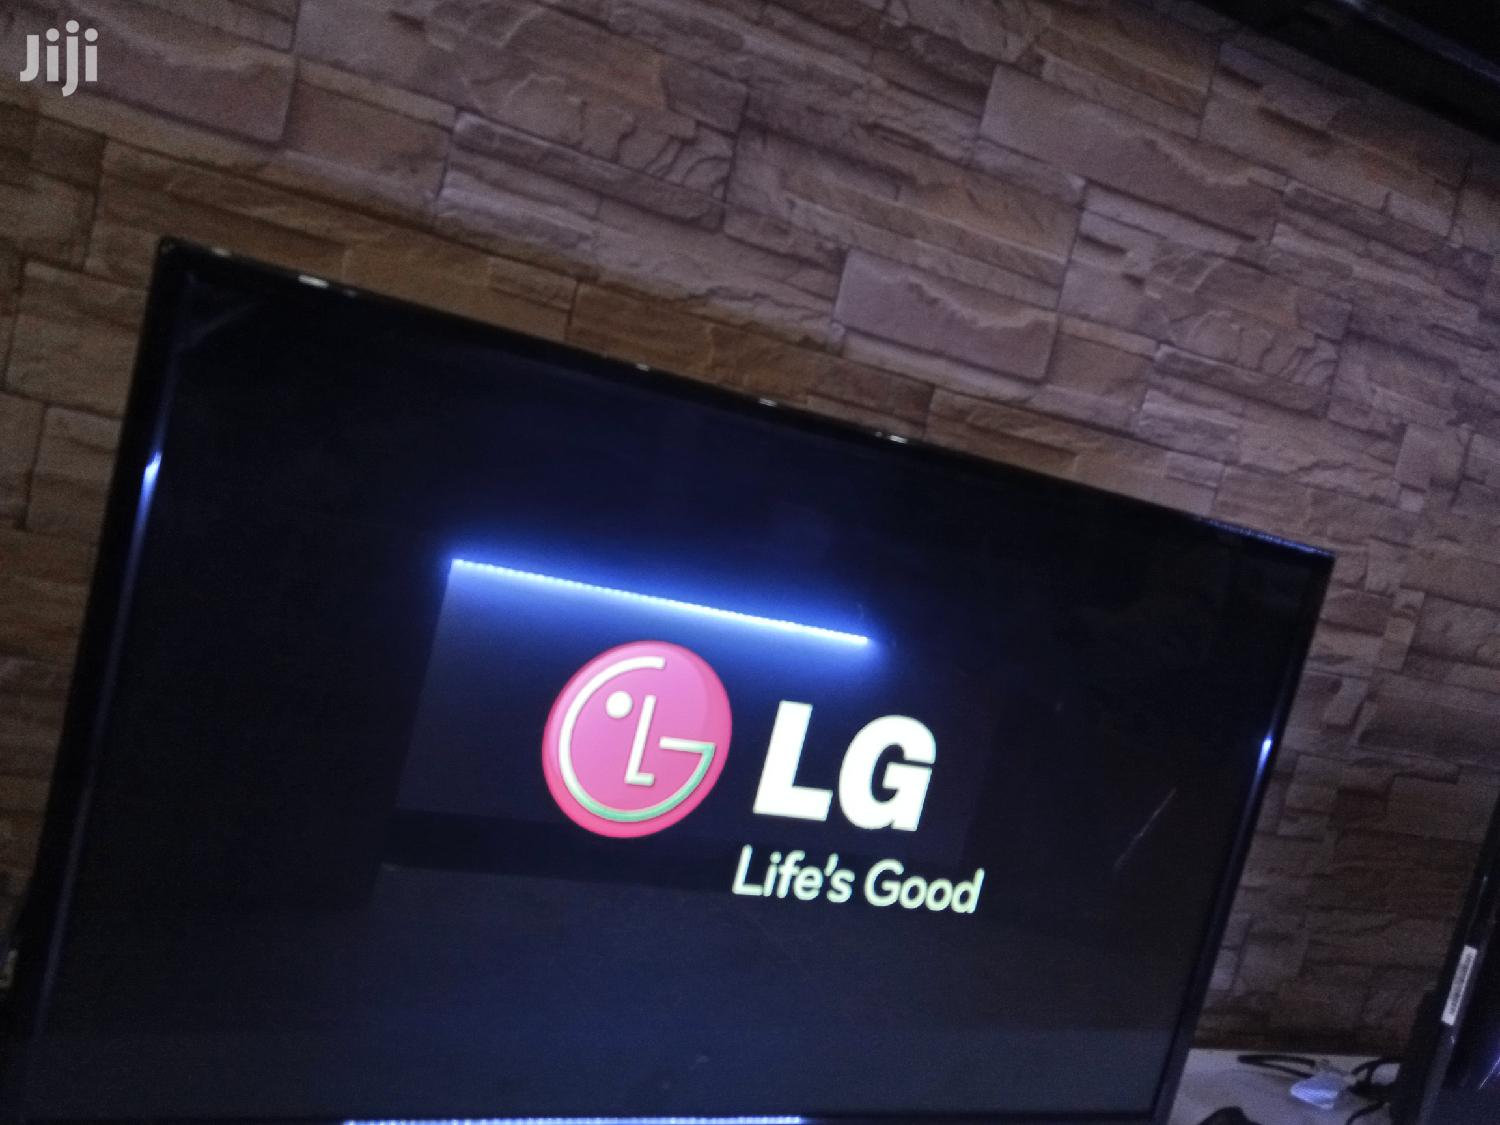 LG Flat Screen Tv 32inches